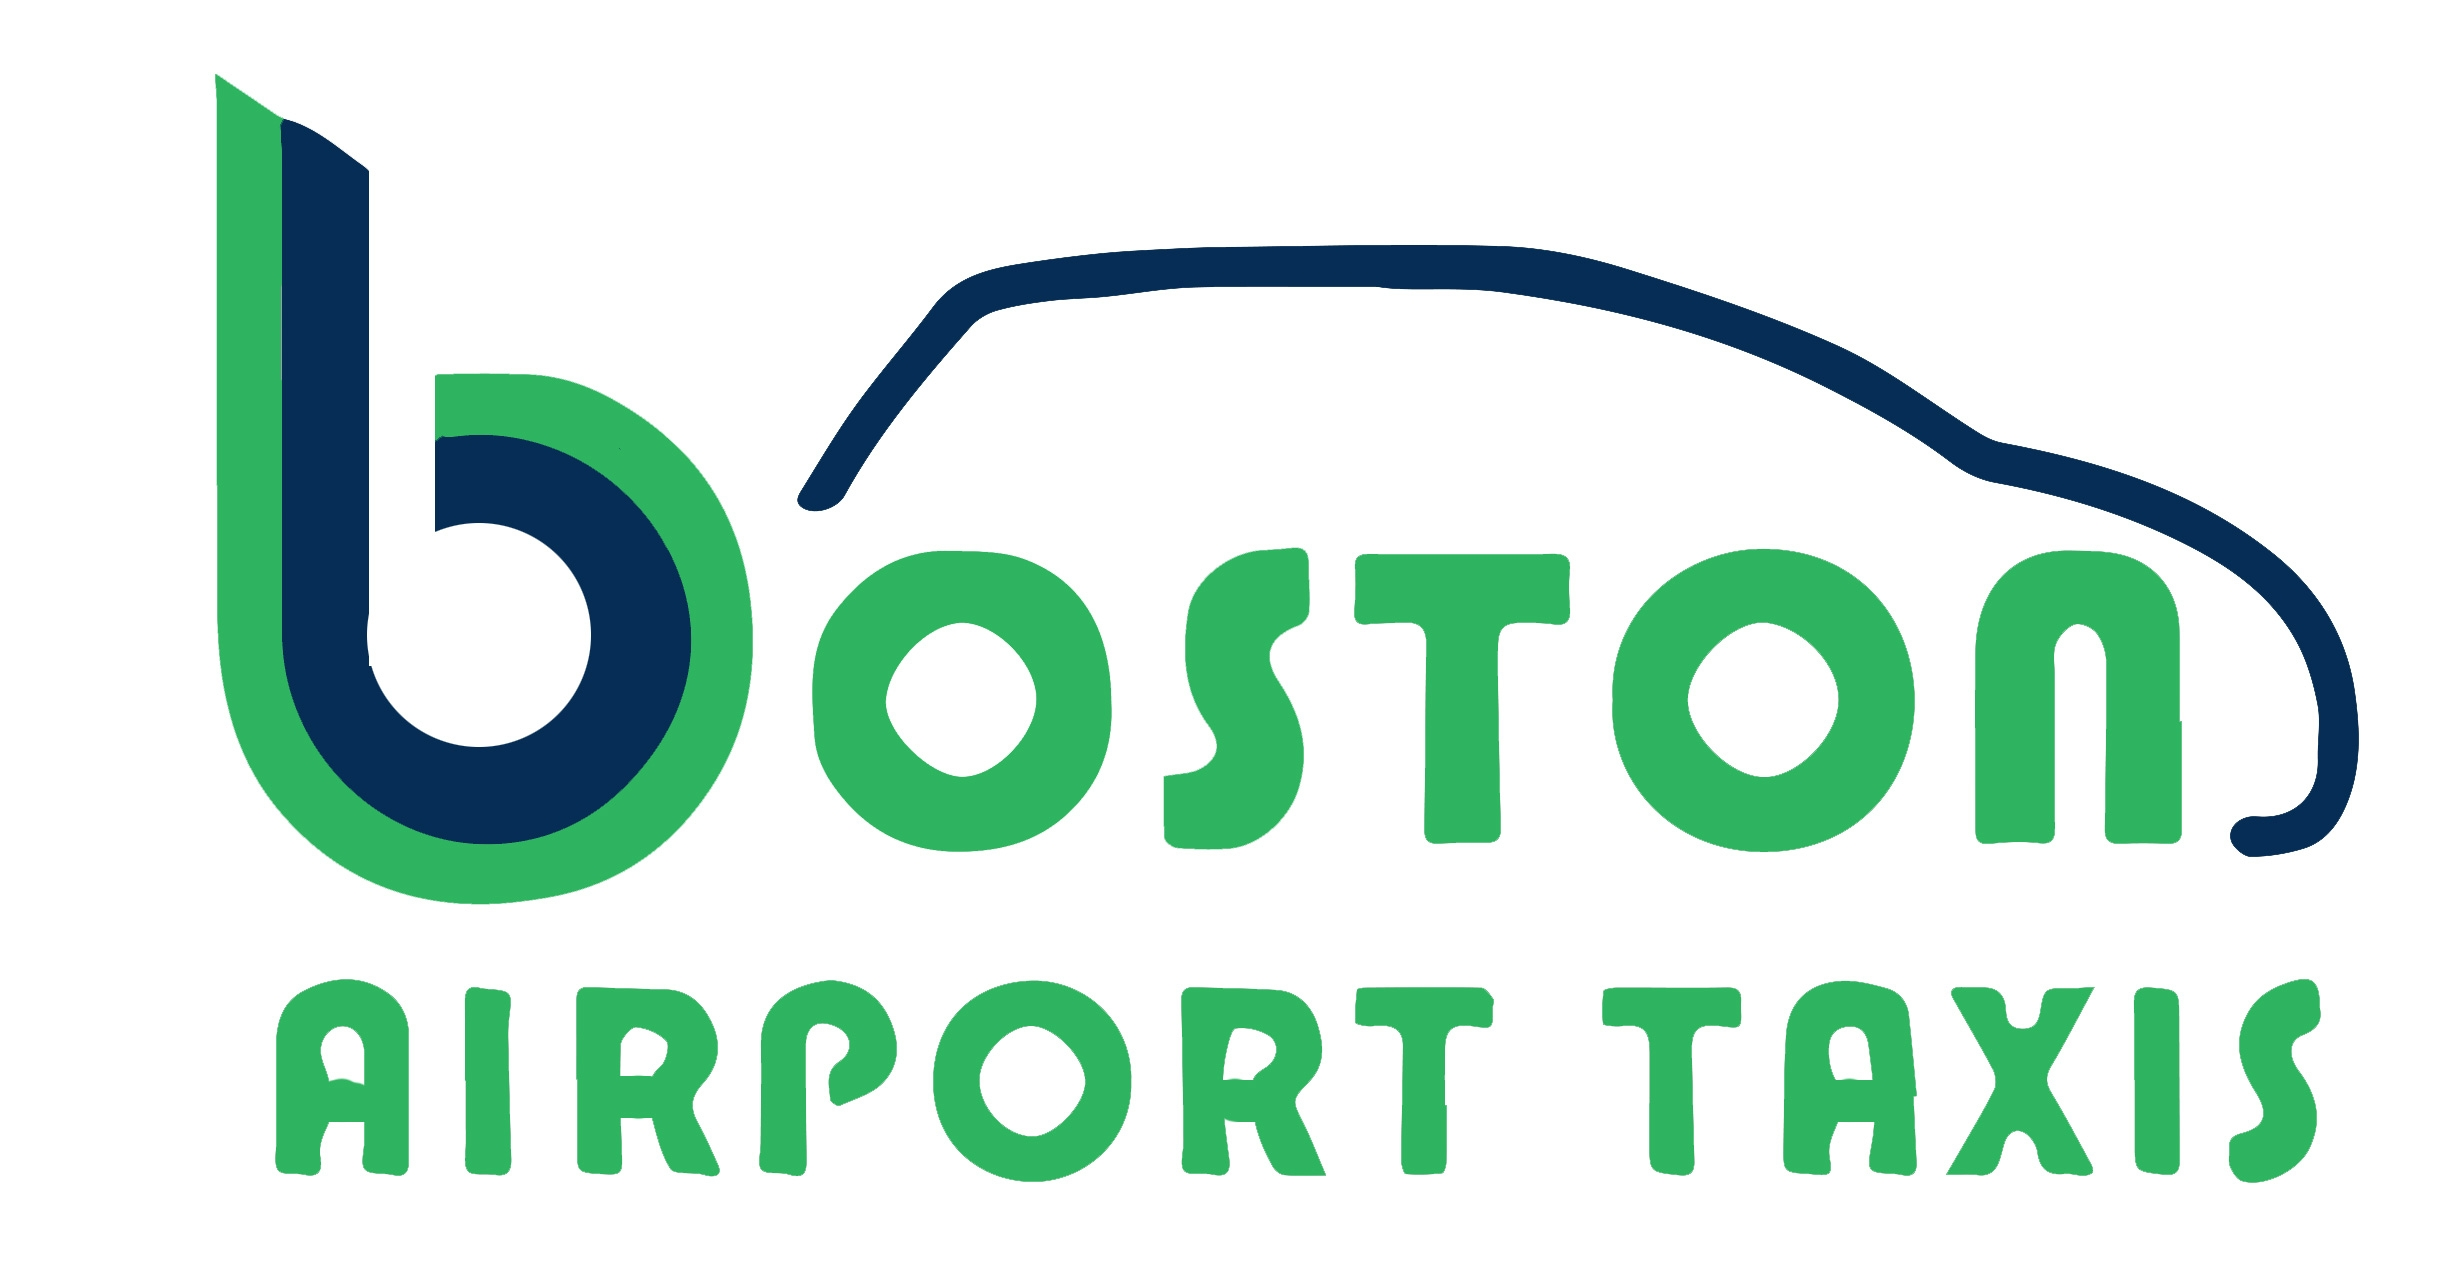 Boston Airport Taxis (@bostonairporttaxis) Cover Image